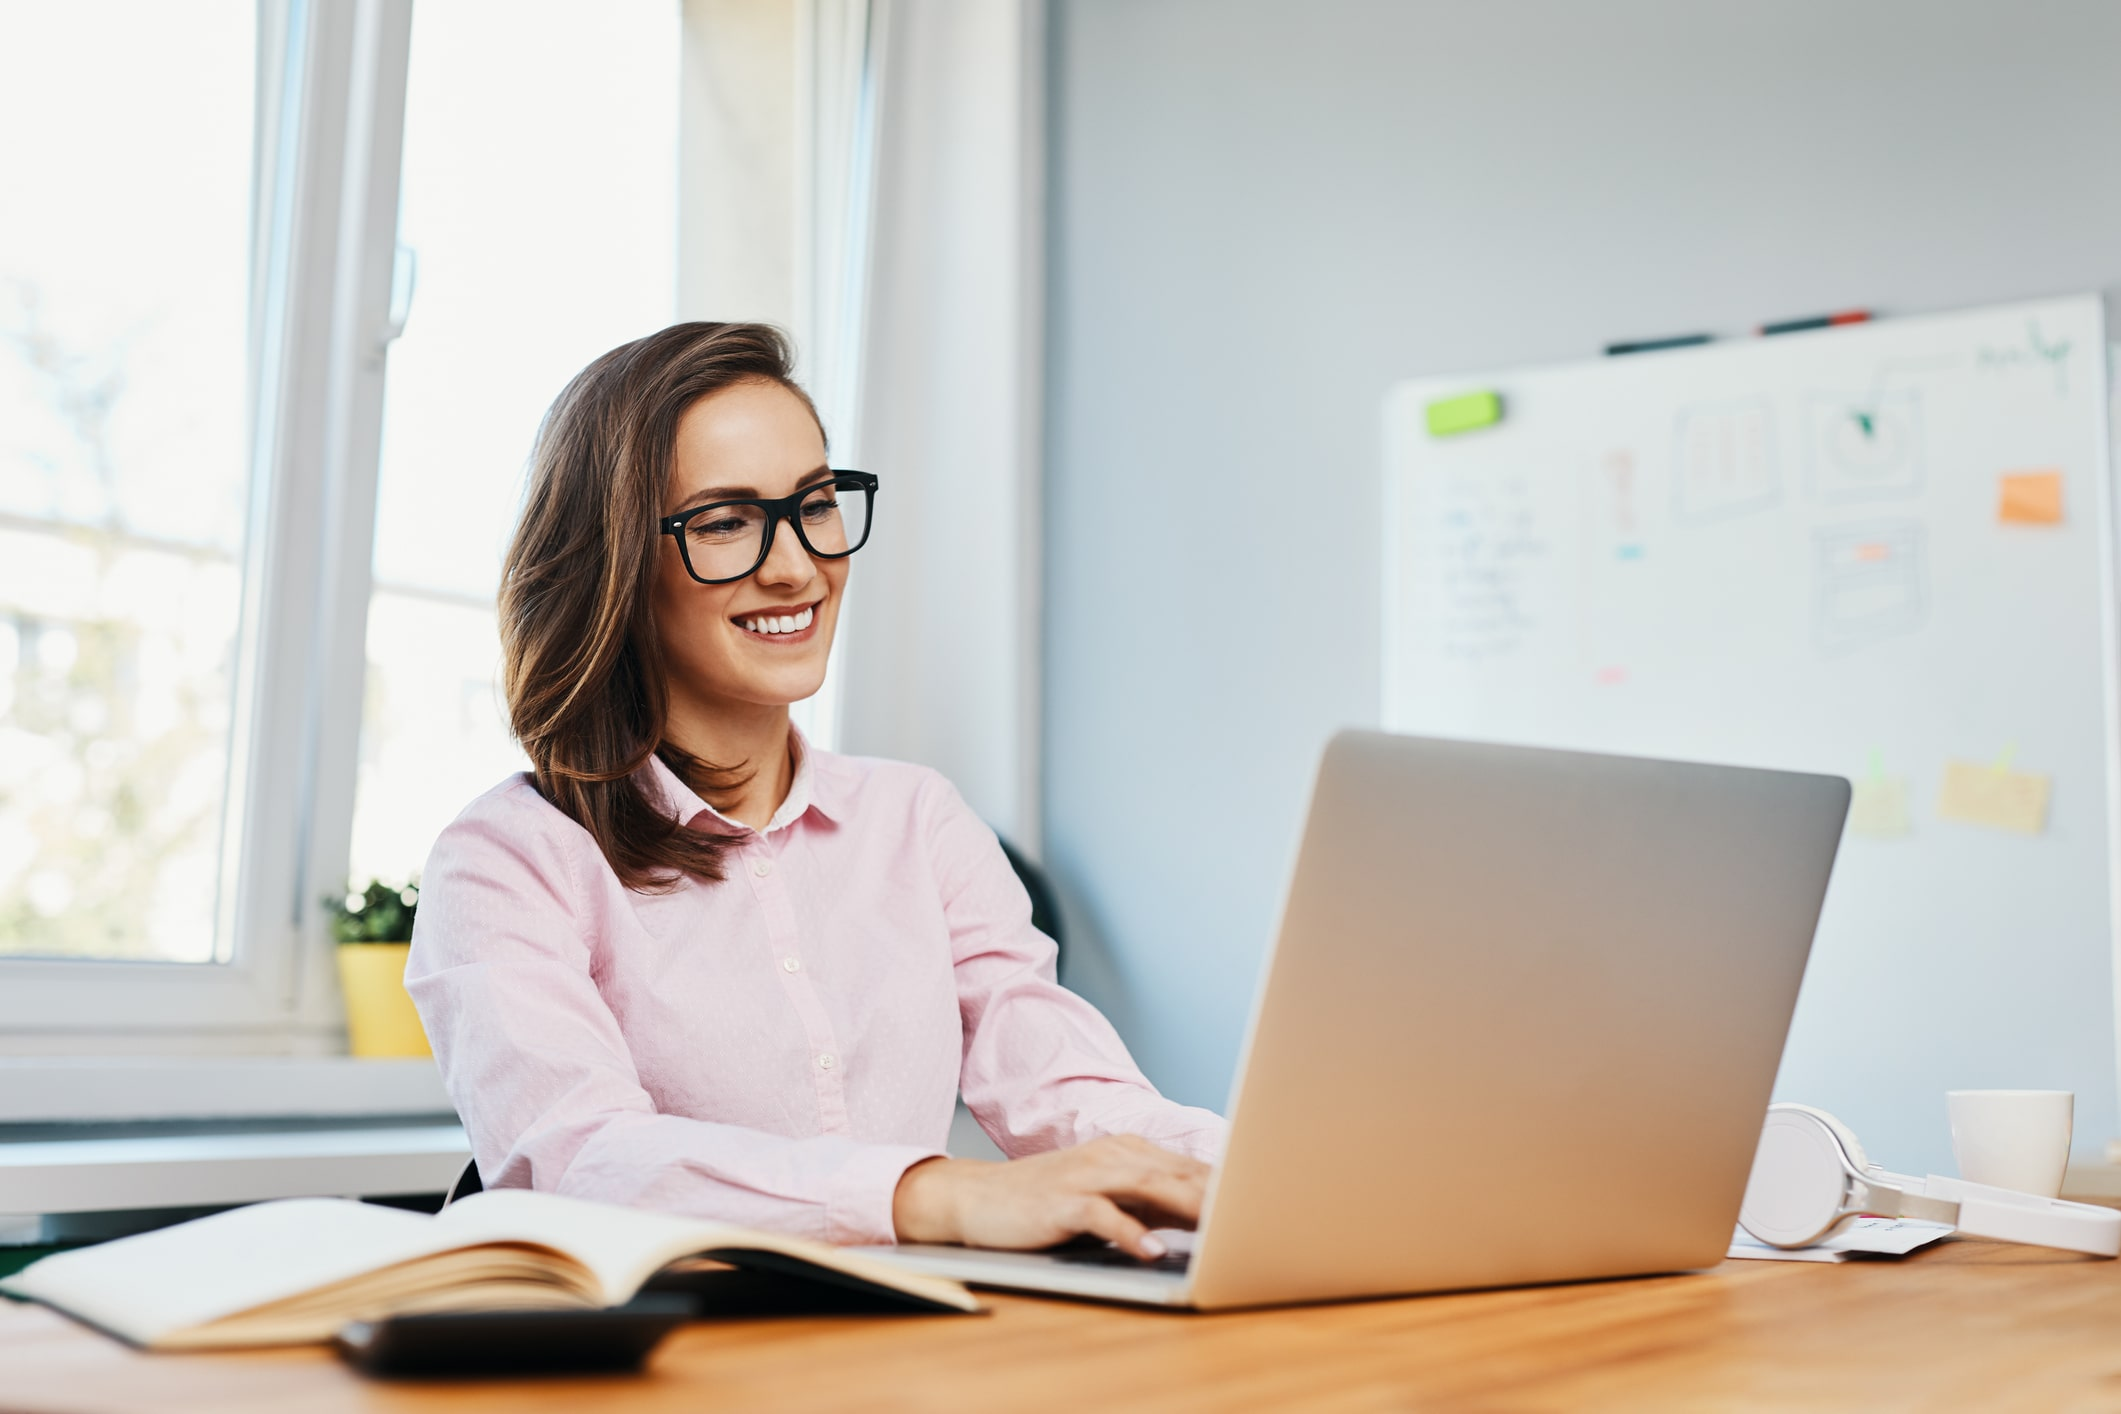 A smiling woman working on her laptop in an office.